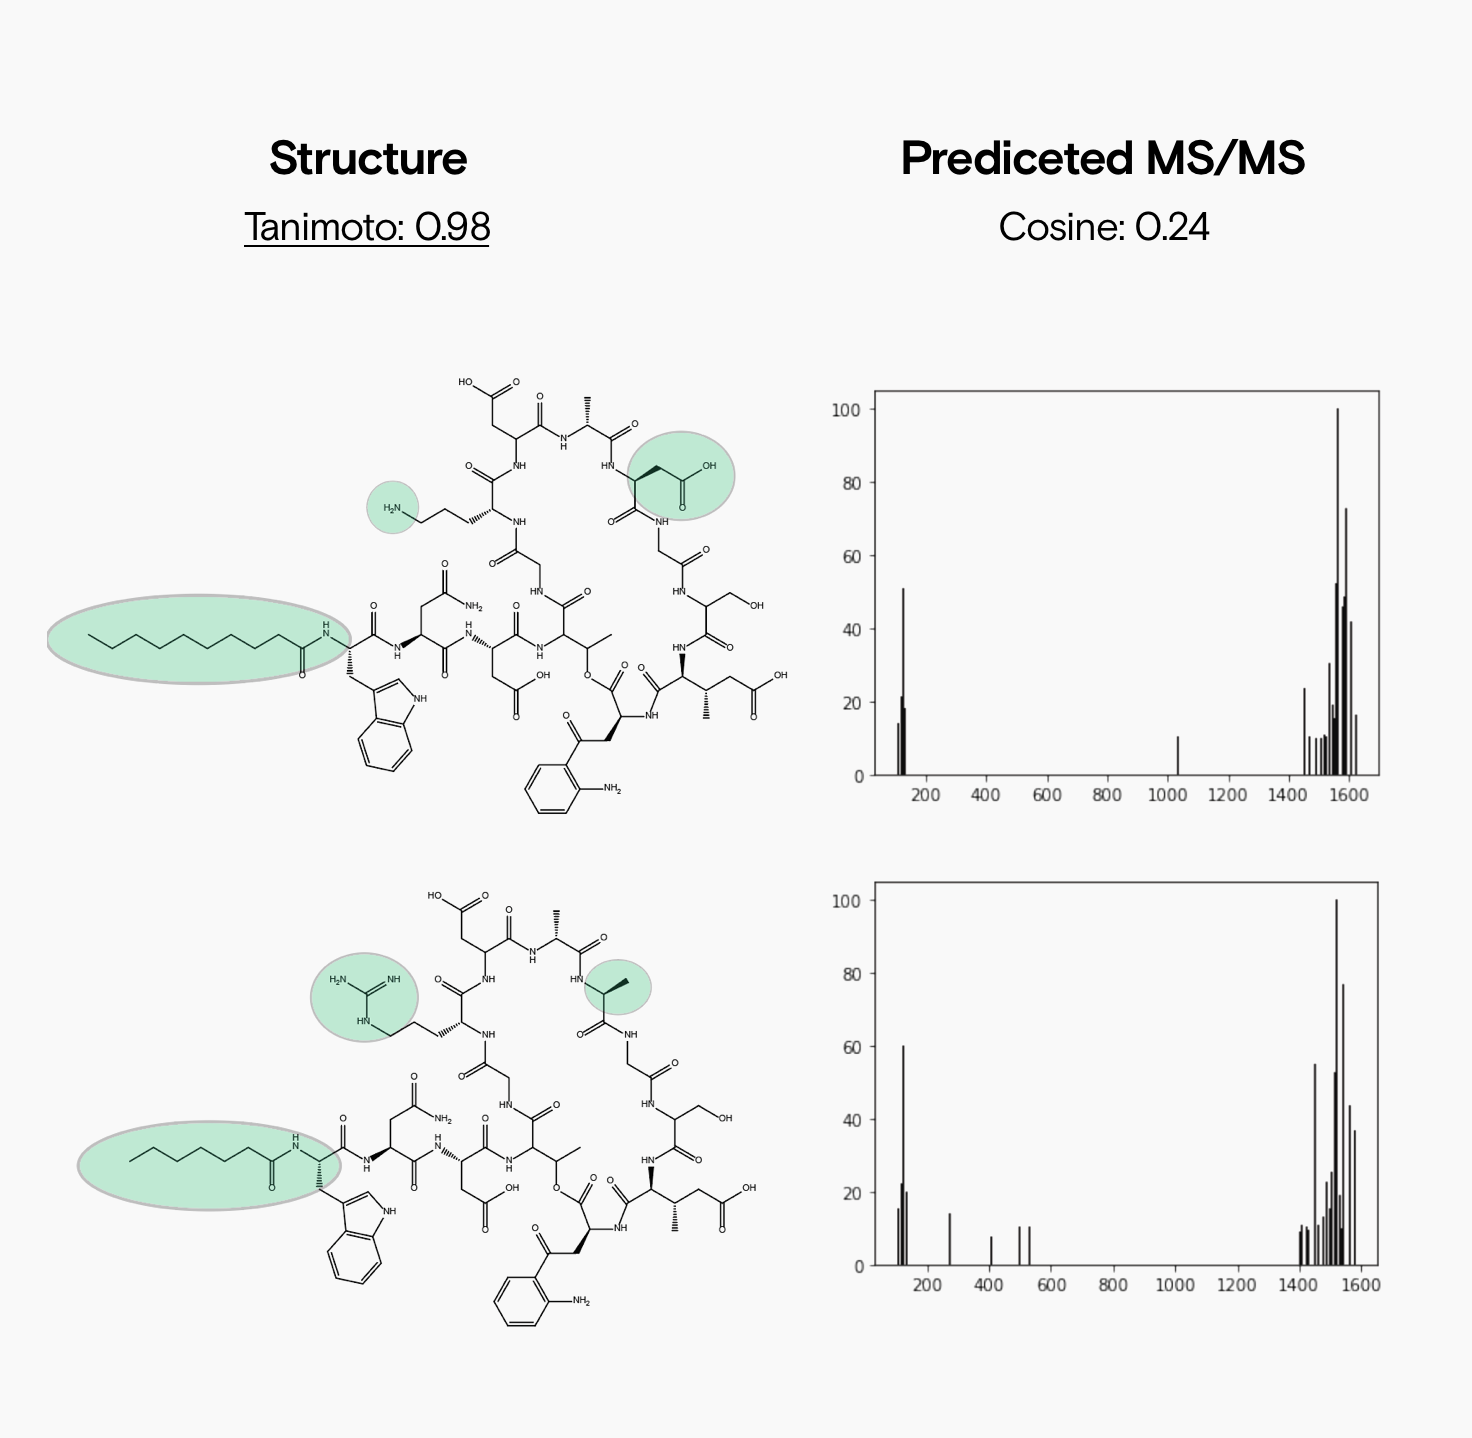 Two cyclic peptides are shown on the right with three minor structural changes in structure highlighted with green circles. Each compound's predicted fragmentation patterns are shown on the right. A Tanimoto score of 0.98 is shown above the structures, and the cosine score of 0.24 is shown above the spectra.